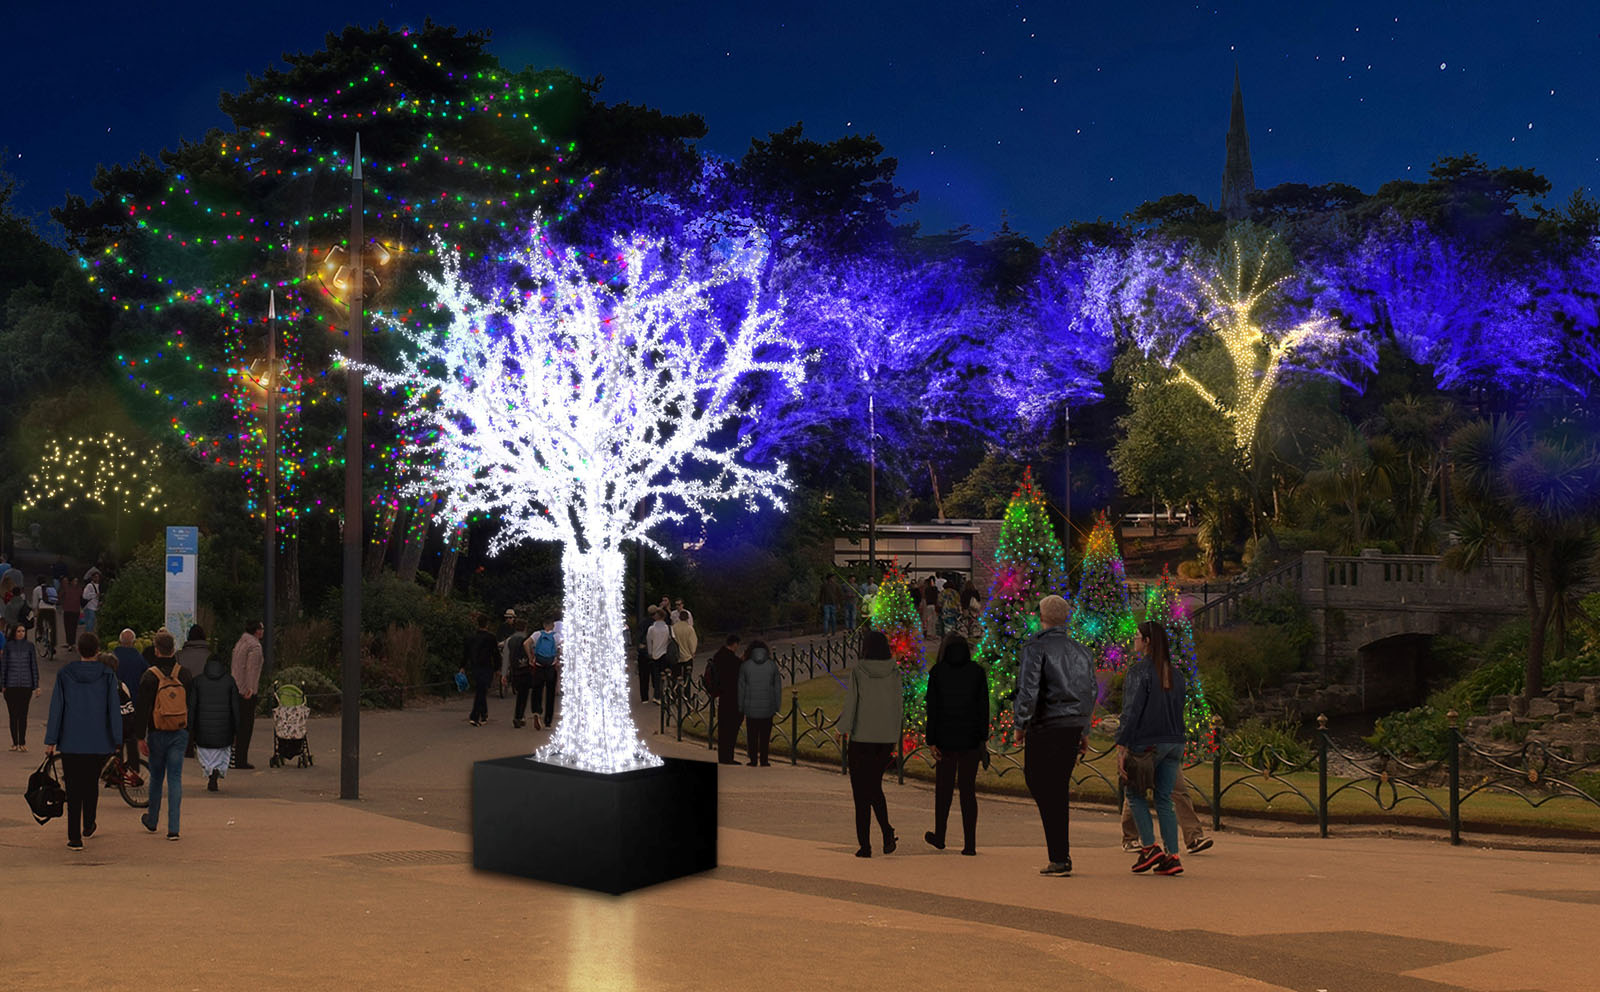 A mock up of Christmas Tree's in Bournemouth's Lower Gardens.